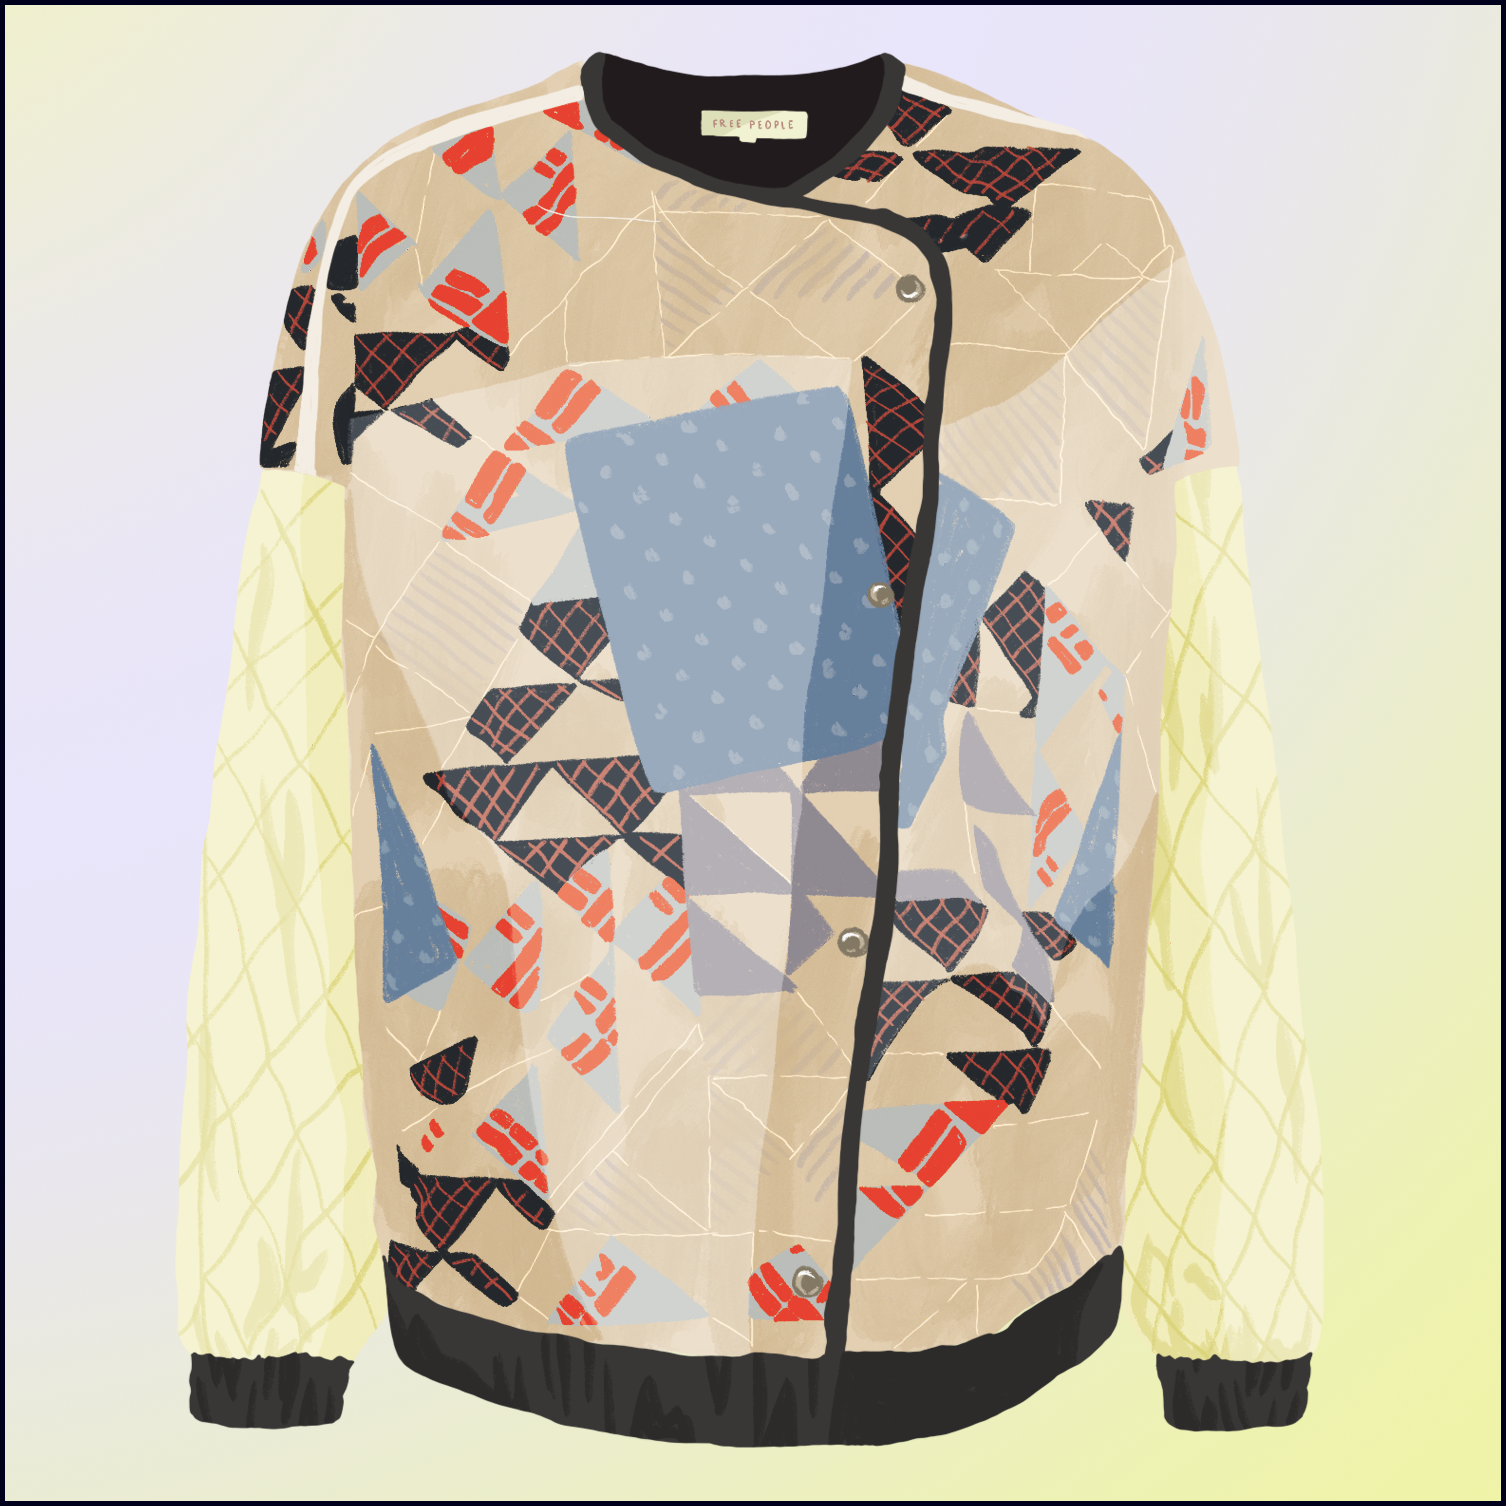 FP_Quilted_Jacket_1x1